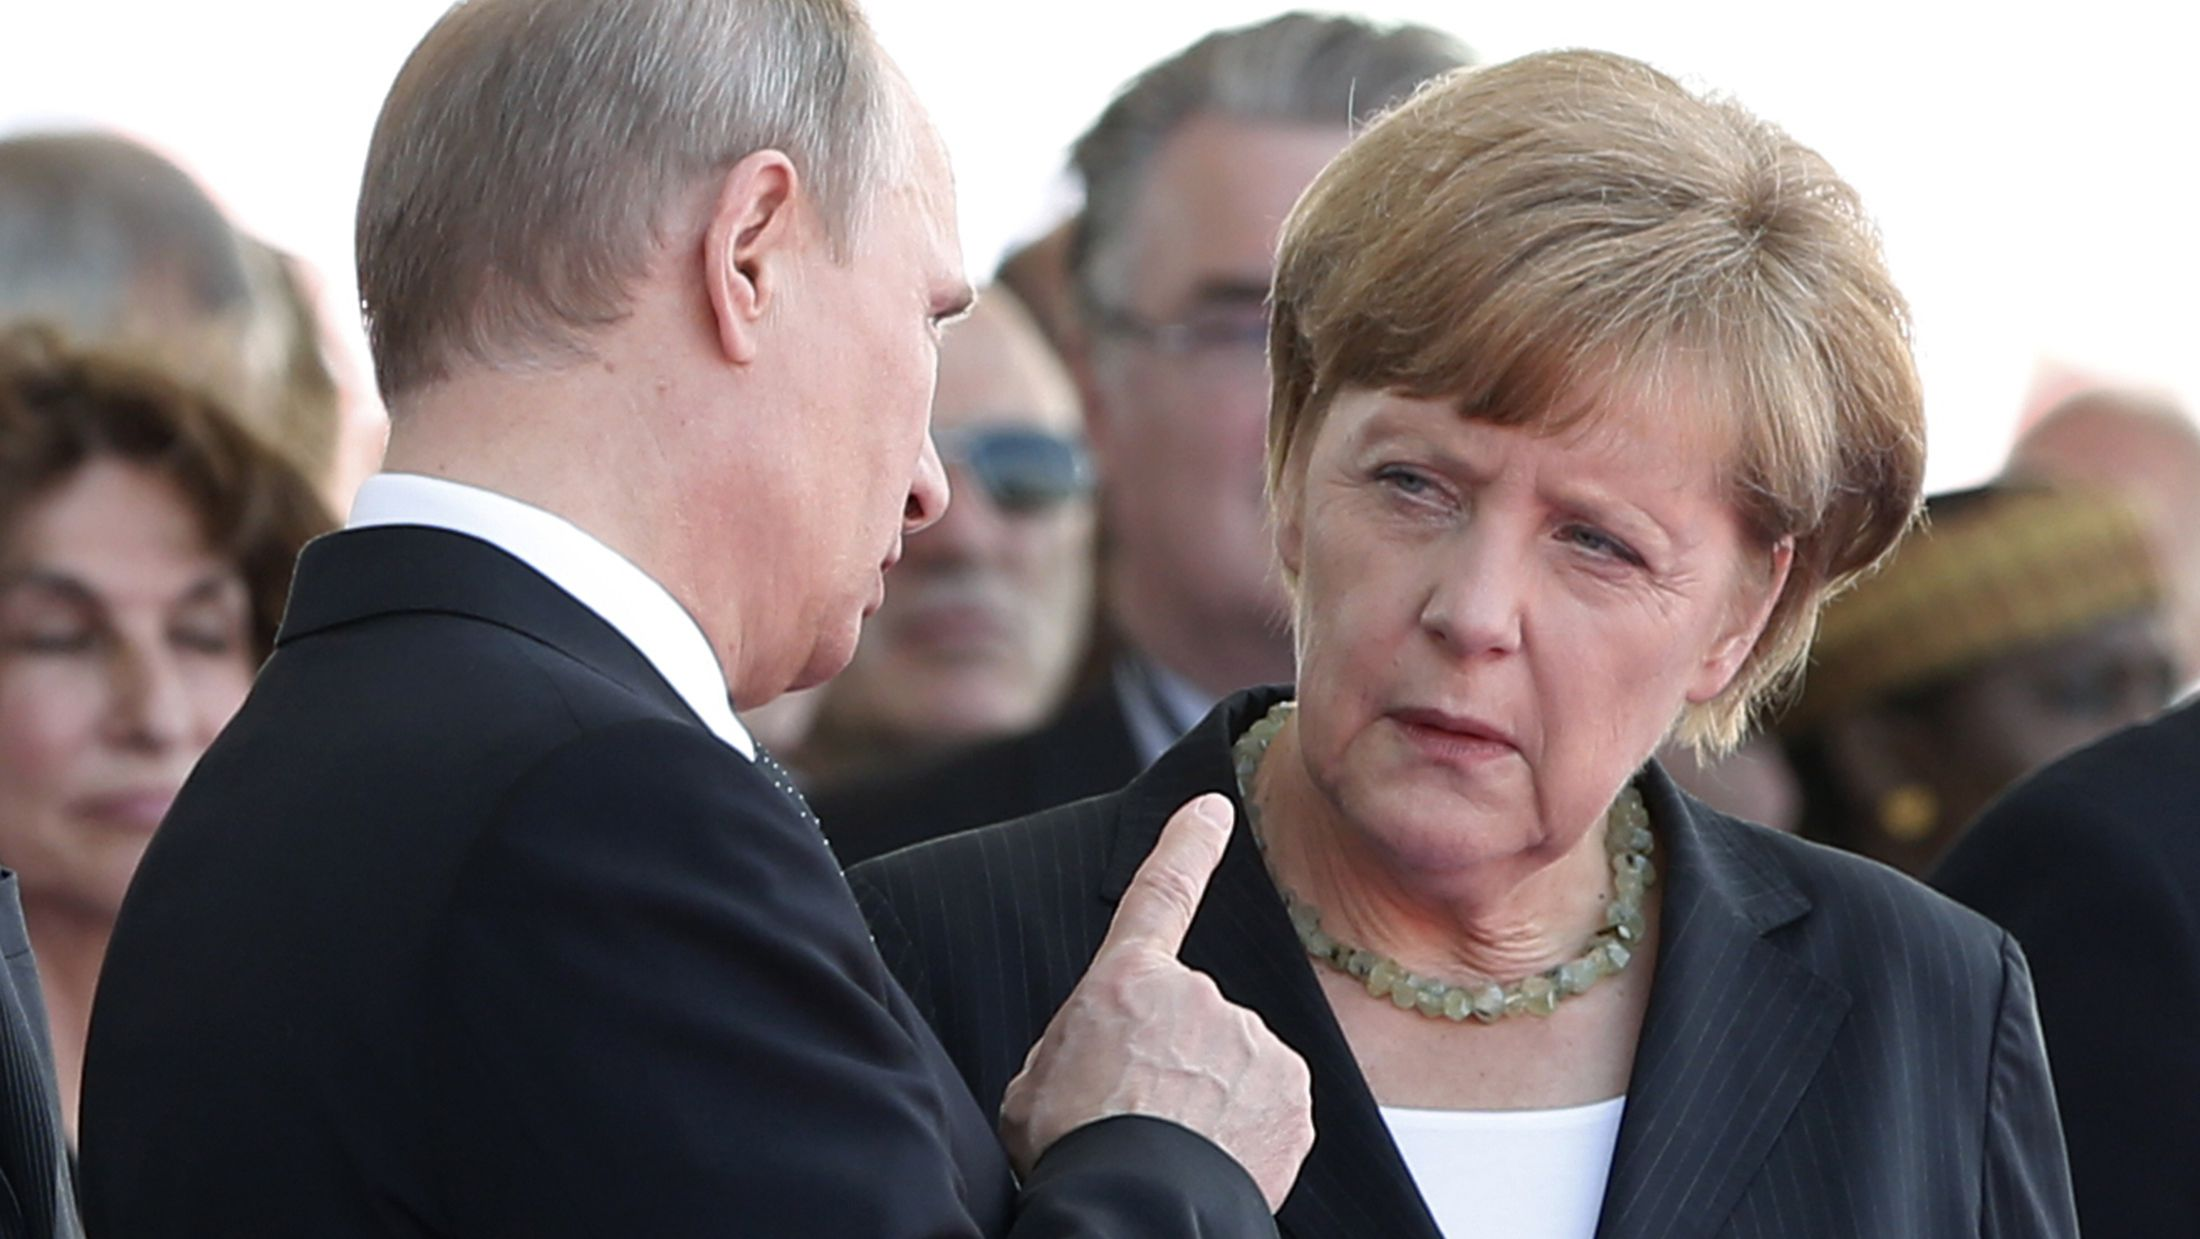 Russian President Vladimir Putin talks with German Chancellor Angela Merkel as they attend the International 70th D-Day Commemoration Ceremony in Ouistreham June 6, 2014. World leaders and veterans gathered by the beaches of Normandy on Friday to mark the 70th anniversary of the Allied D-Day landings that helped turn the tables in World War Two, with host France hoping the event will bring a thaw in the?Ukraine?crisis.